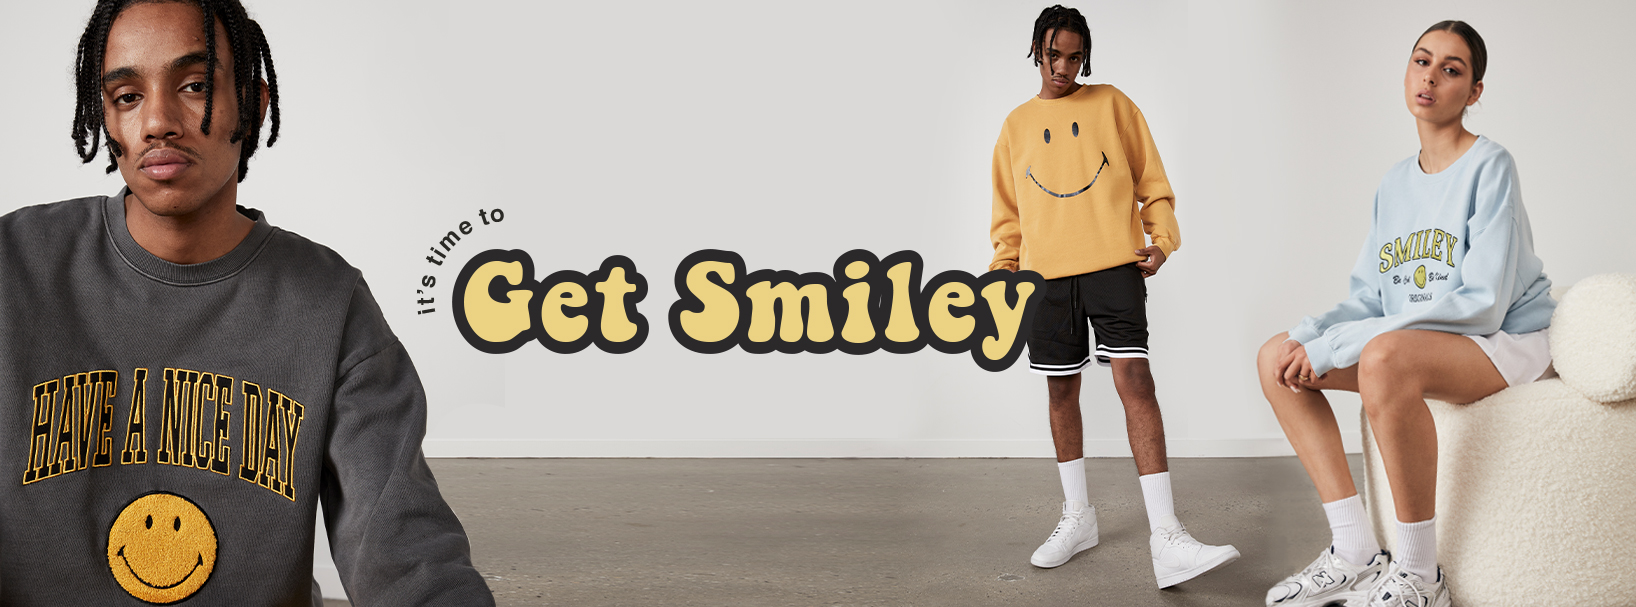 Get Smiley!